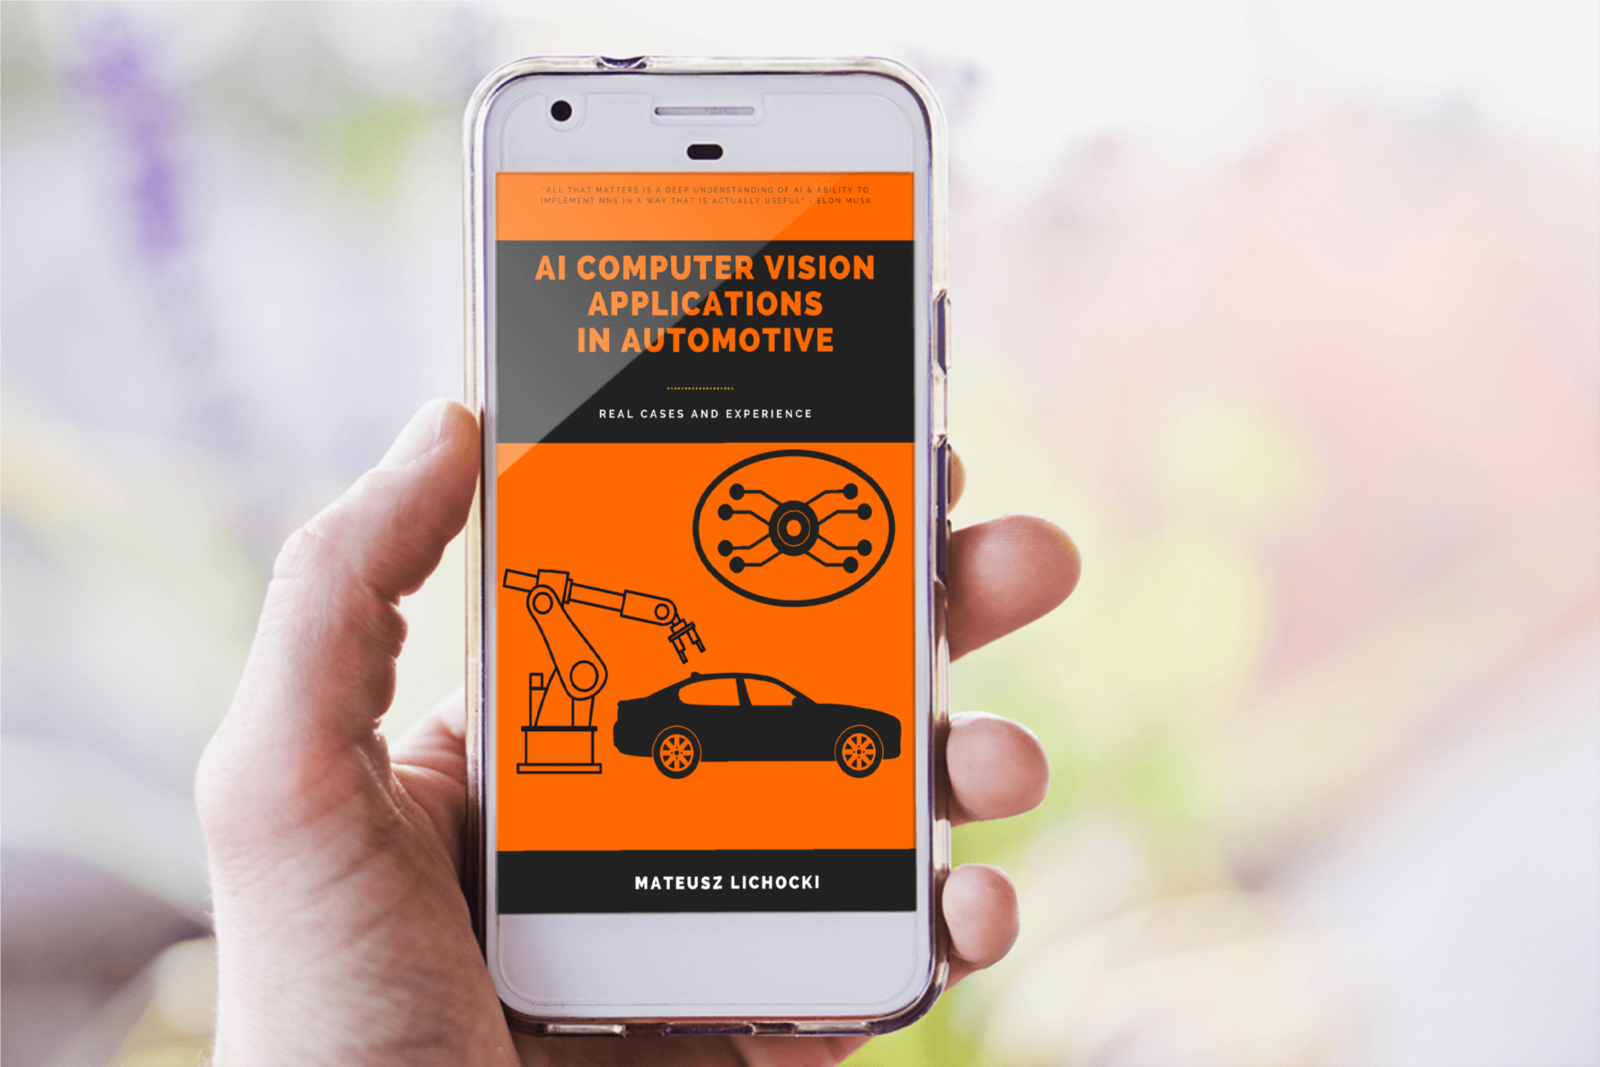 AI computer vision applications in automotive phone